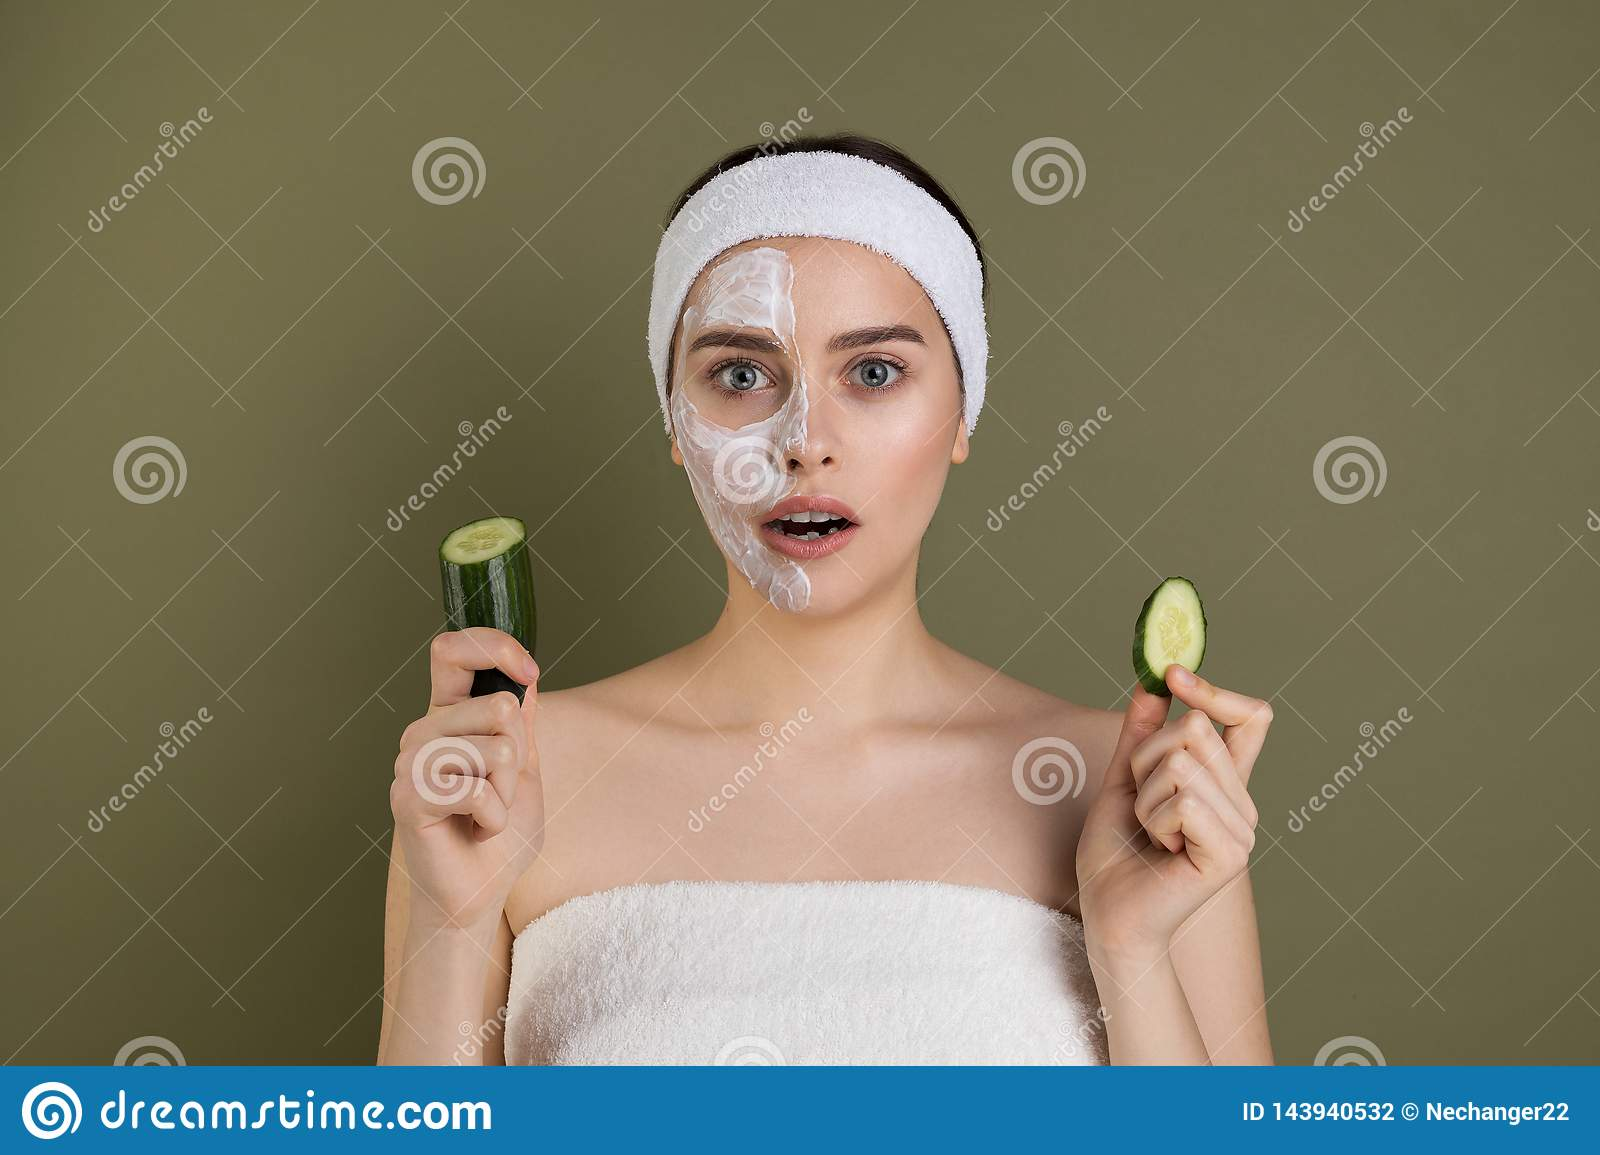 Surprised woman with bare shoulders loking at camera with open mouth, white mask on half of her face